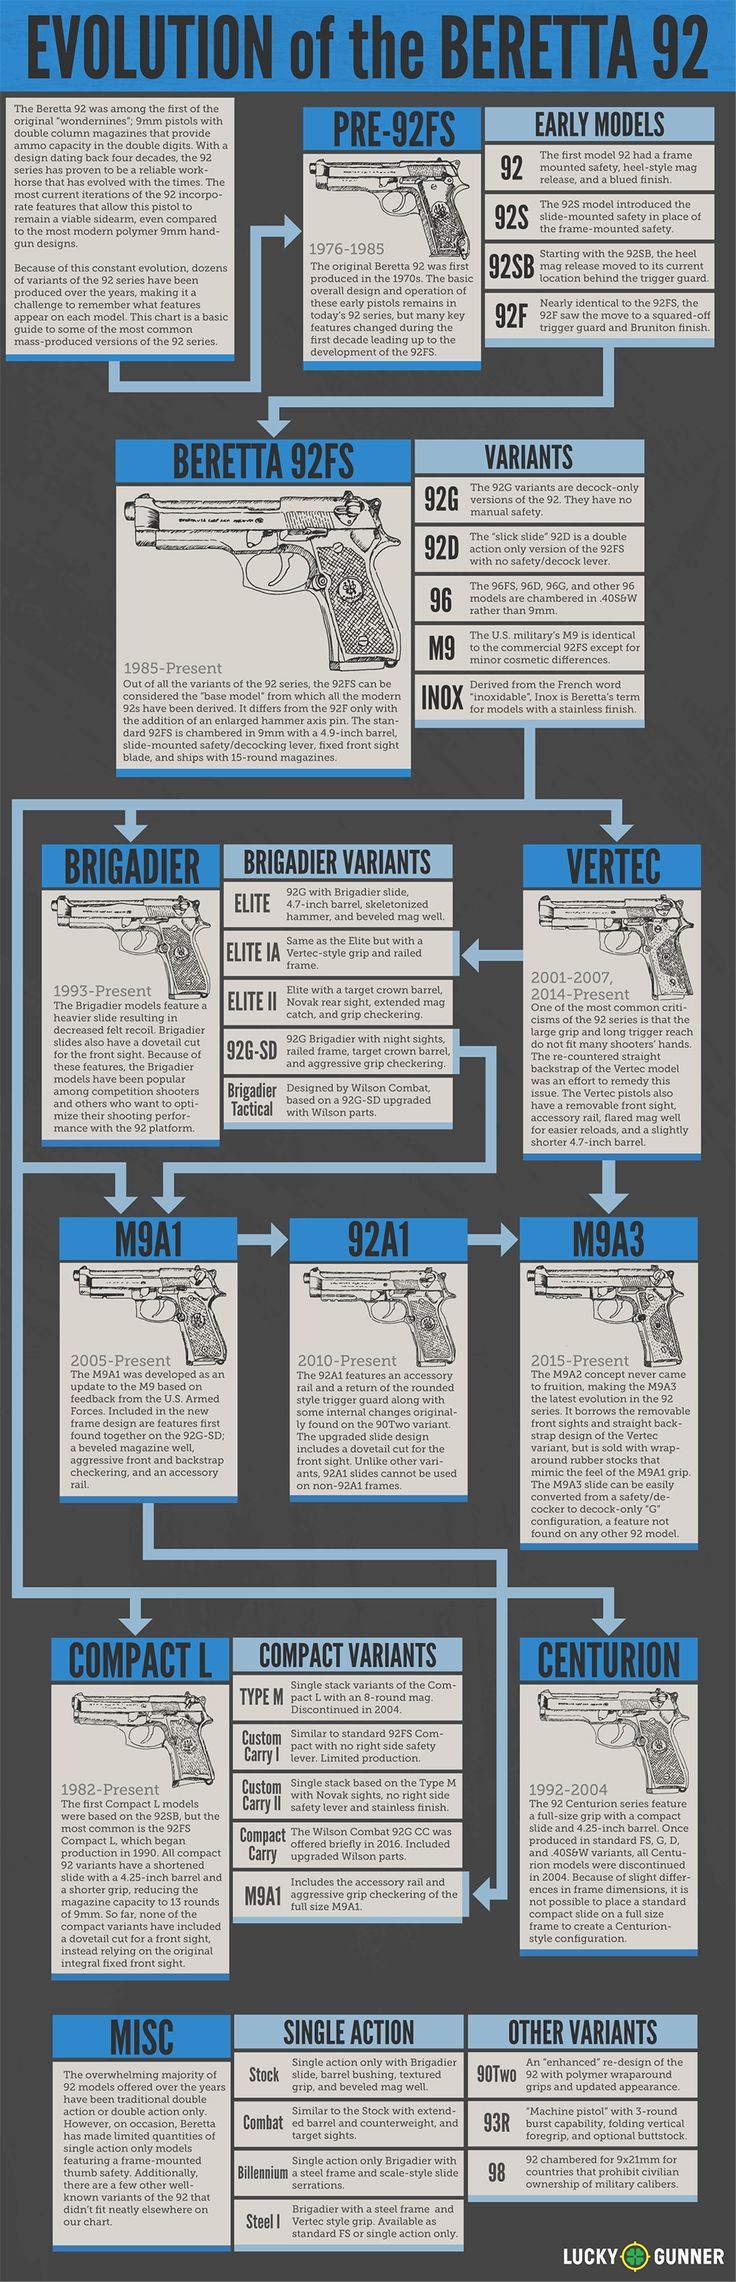 Evolution of the Beretta 92